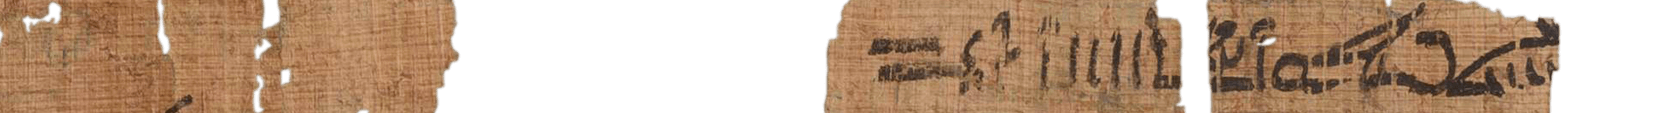 the Turin king list 4.23 (photo of the hieratic text)